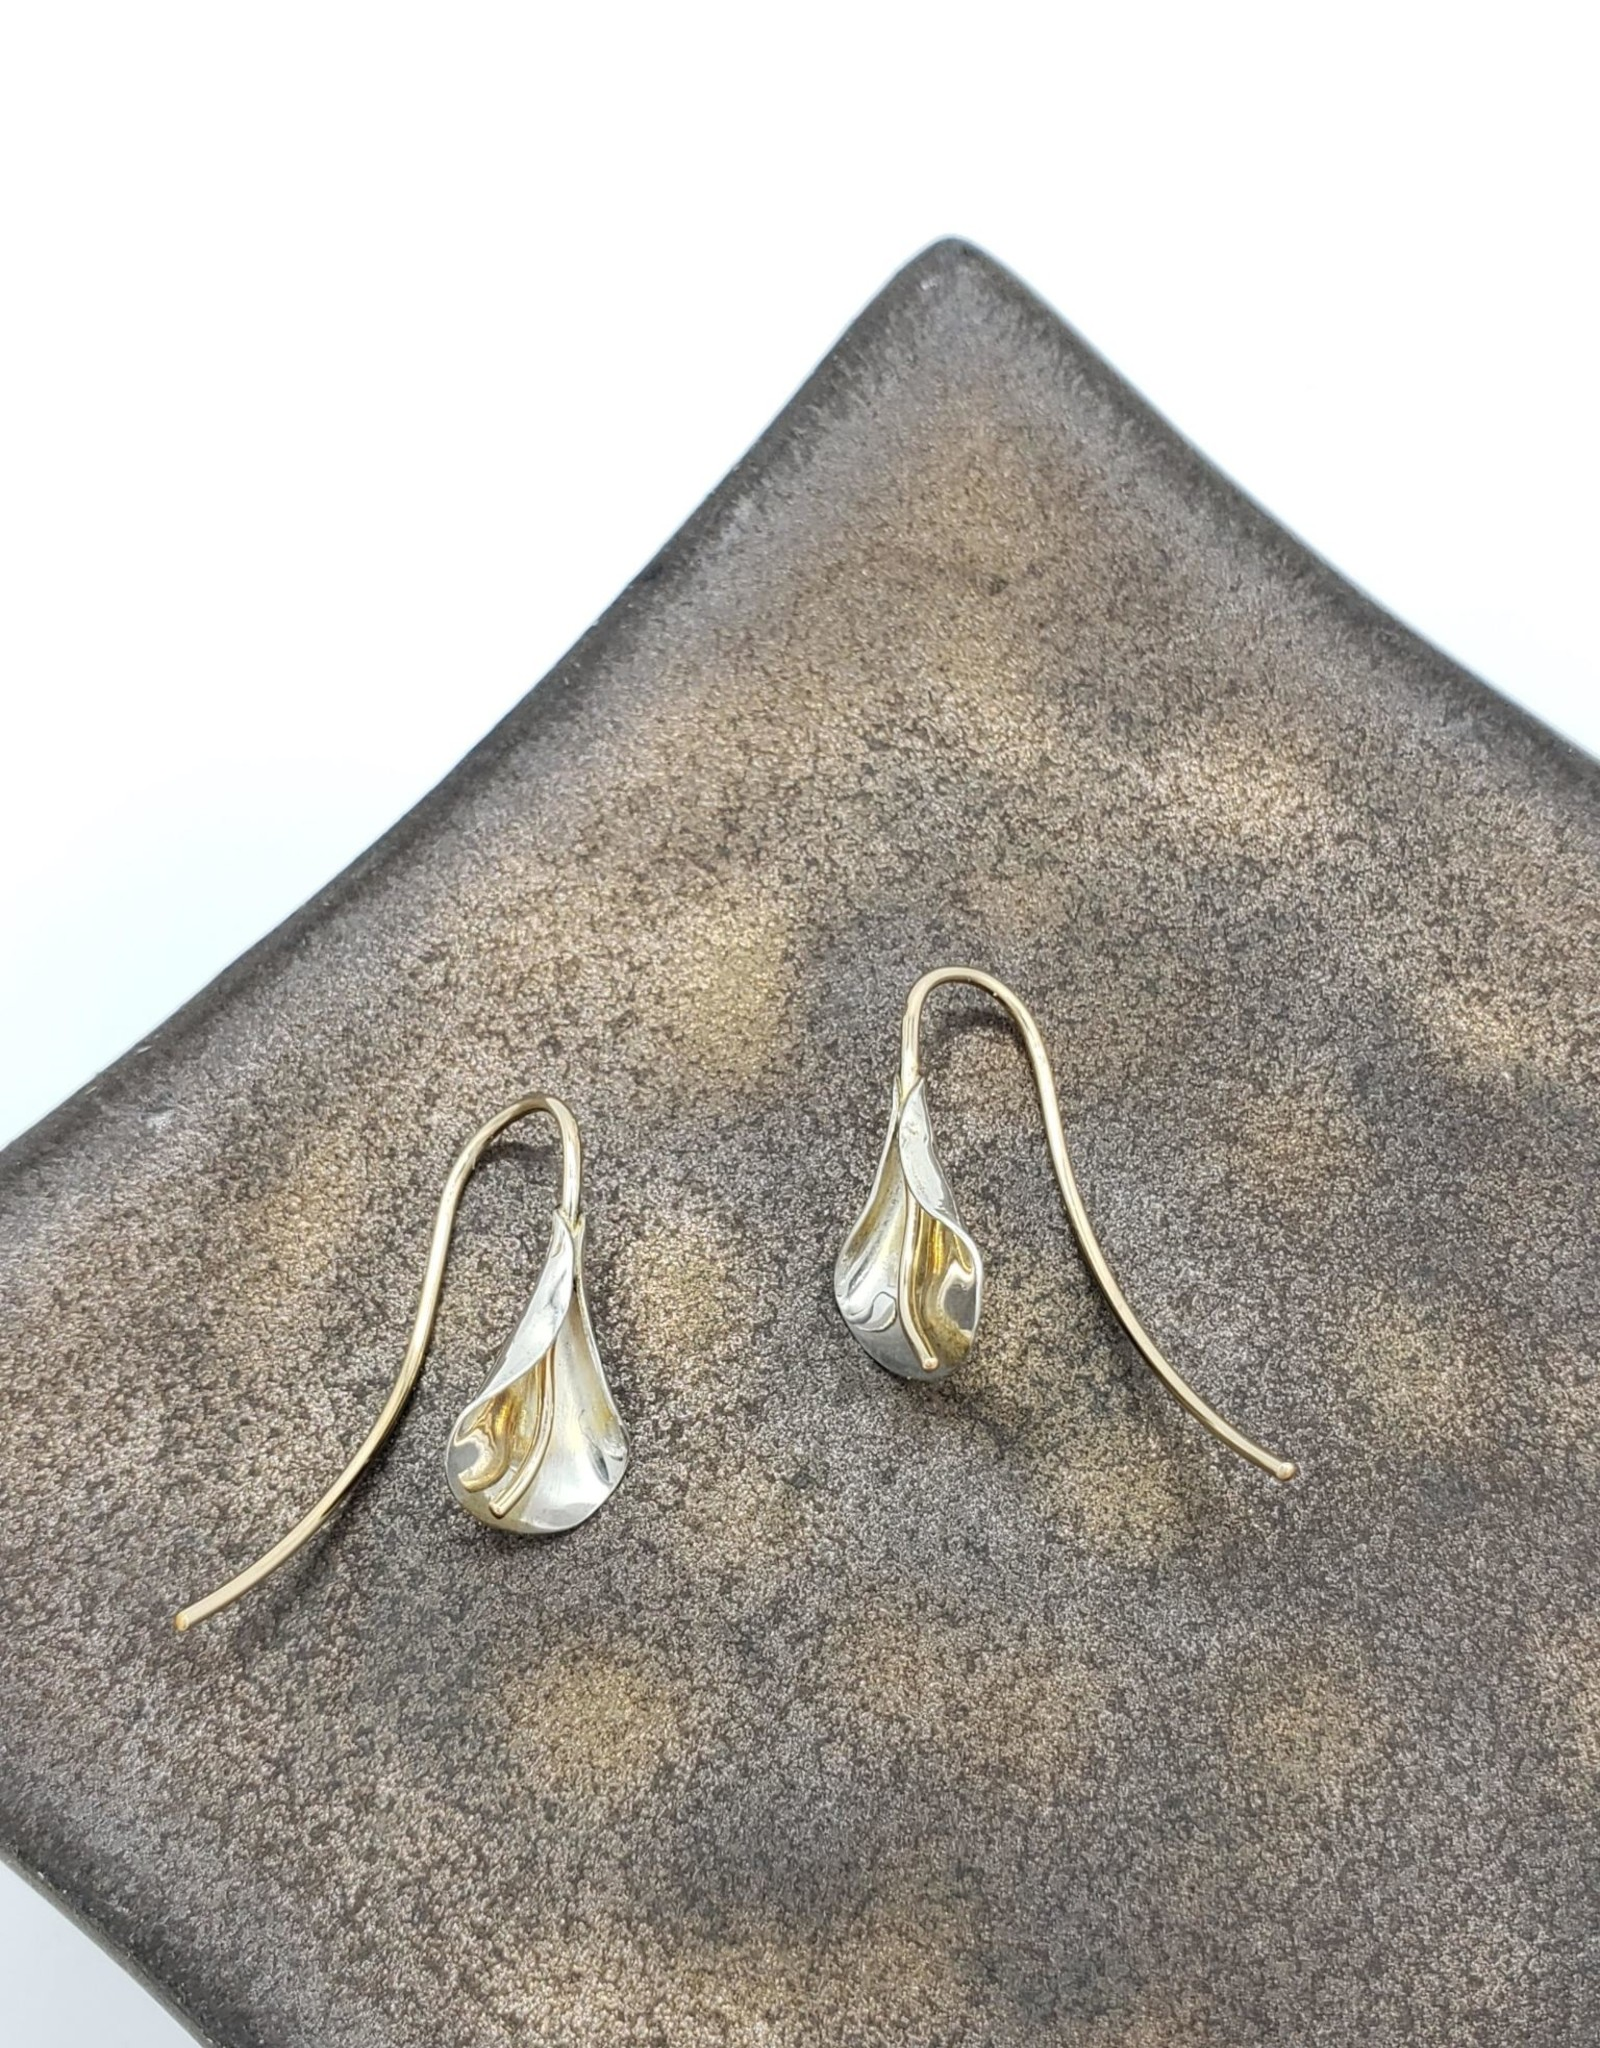 Peter James Jewelry Lily Earrings, Sterling Silver w/ Gold Fill Detail - Peter James Jewelry